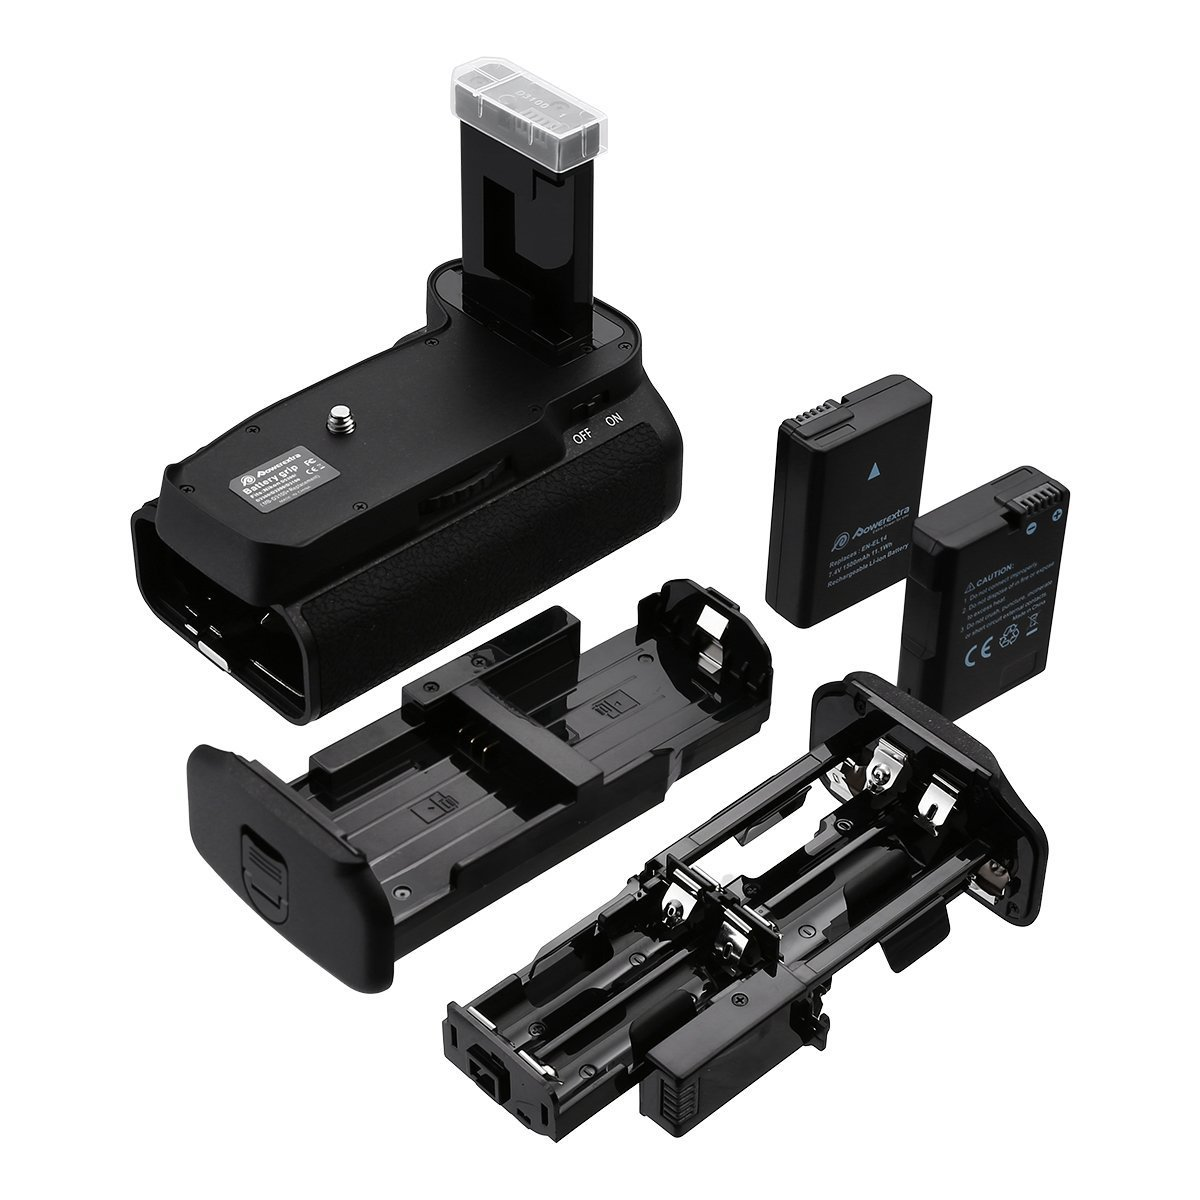 Powerextra Battery Grip + 2 × High Capacity 1500mAh EN-EL14/EN-EL14A Battery + AA-Size Battery Holder with Infrared Remote Control for Nikon D3100/D3200/D3300/D5300 Digital SLR Camera by Powerextra